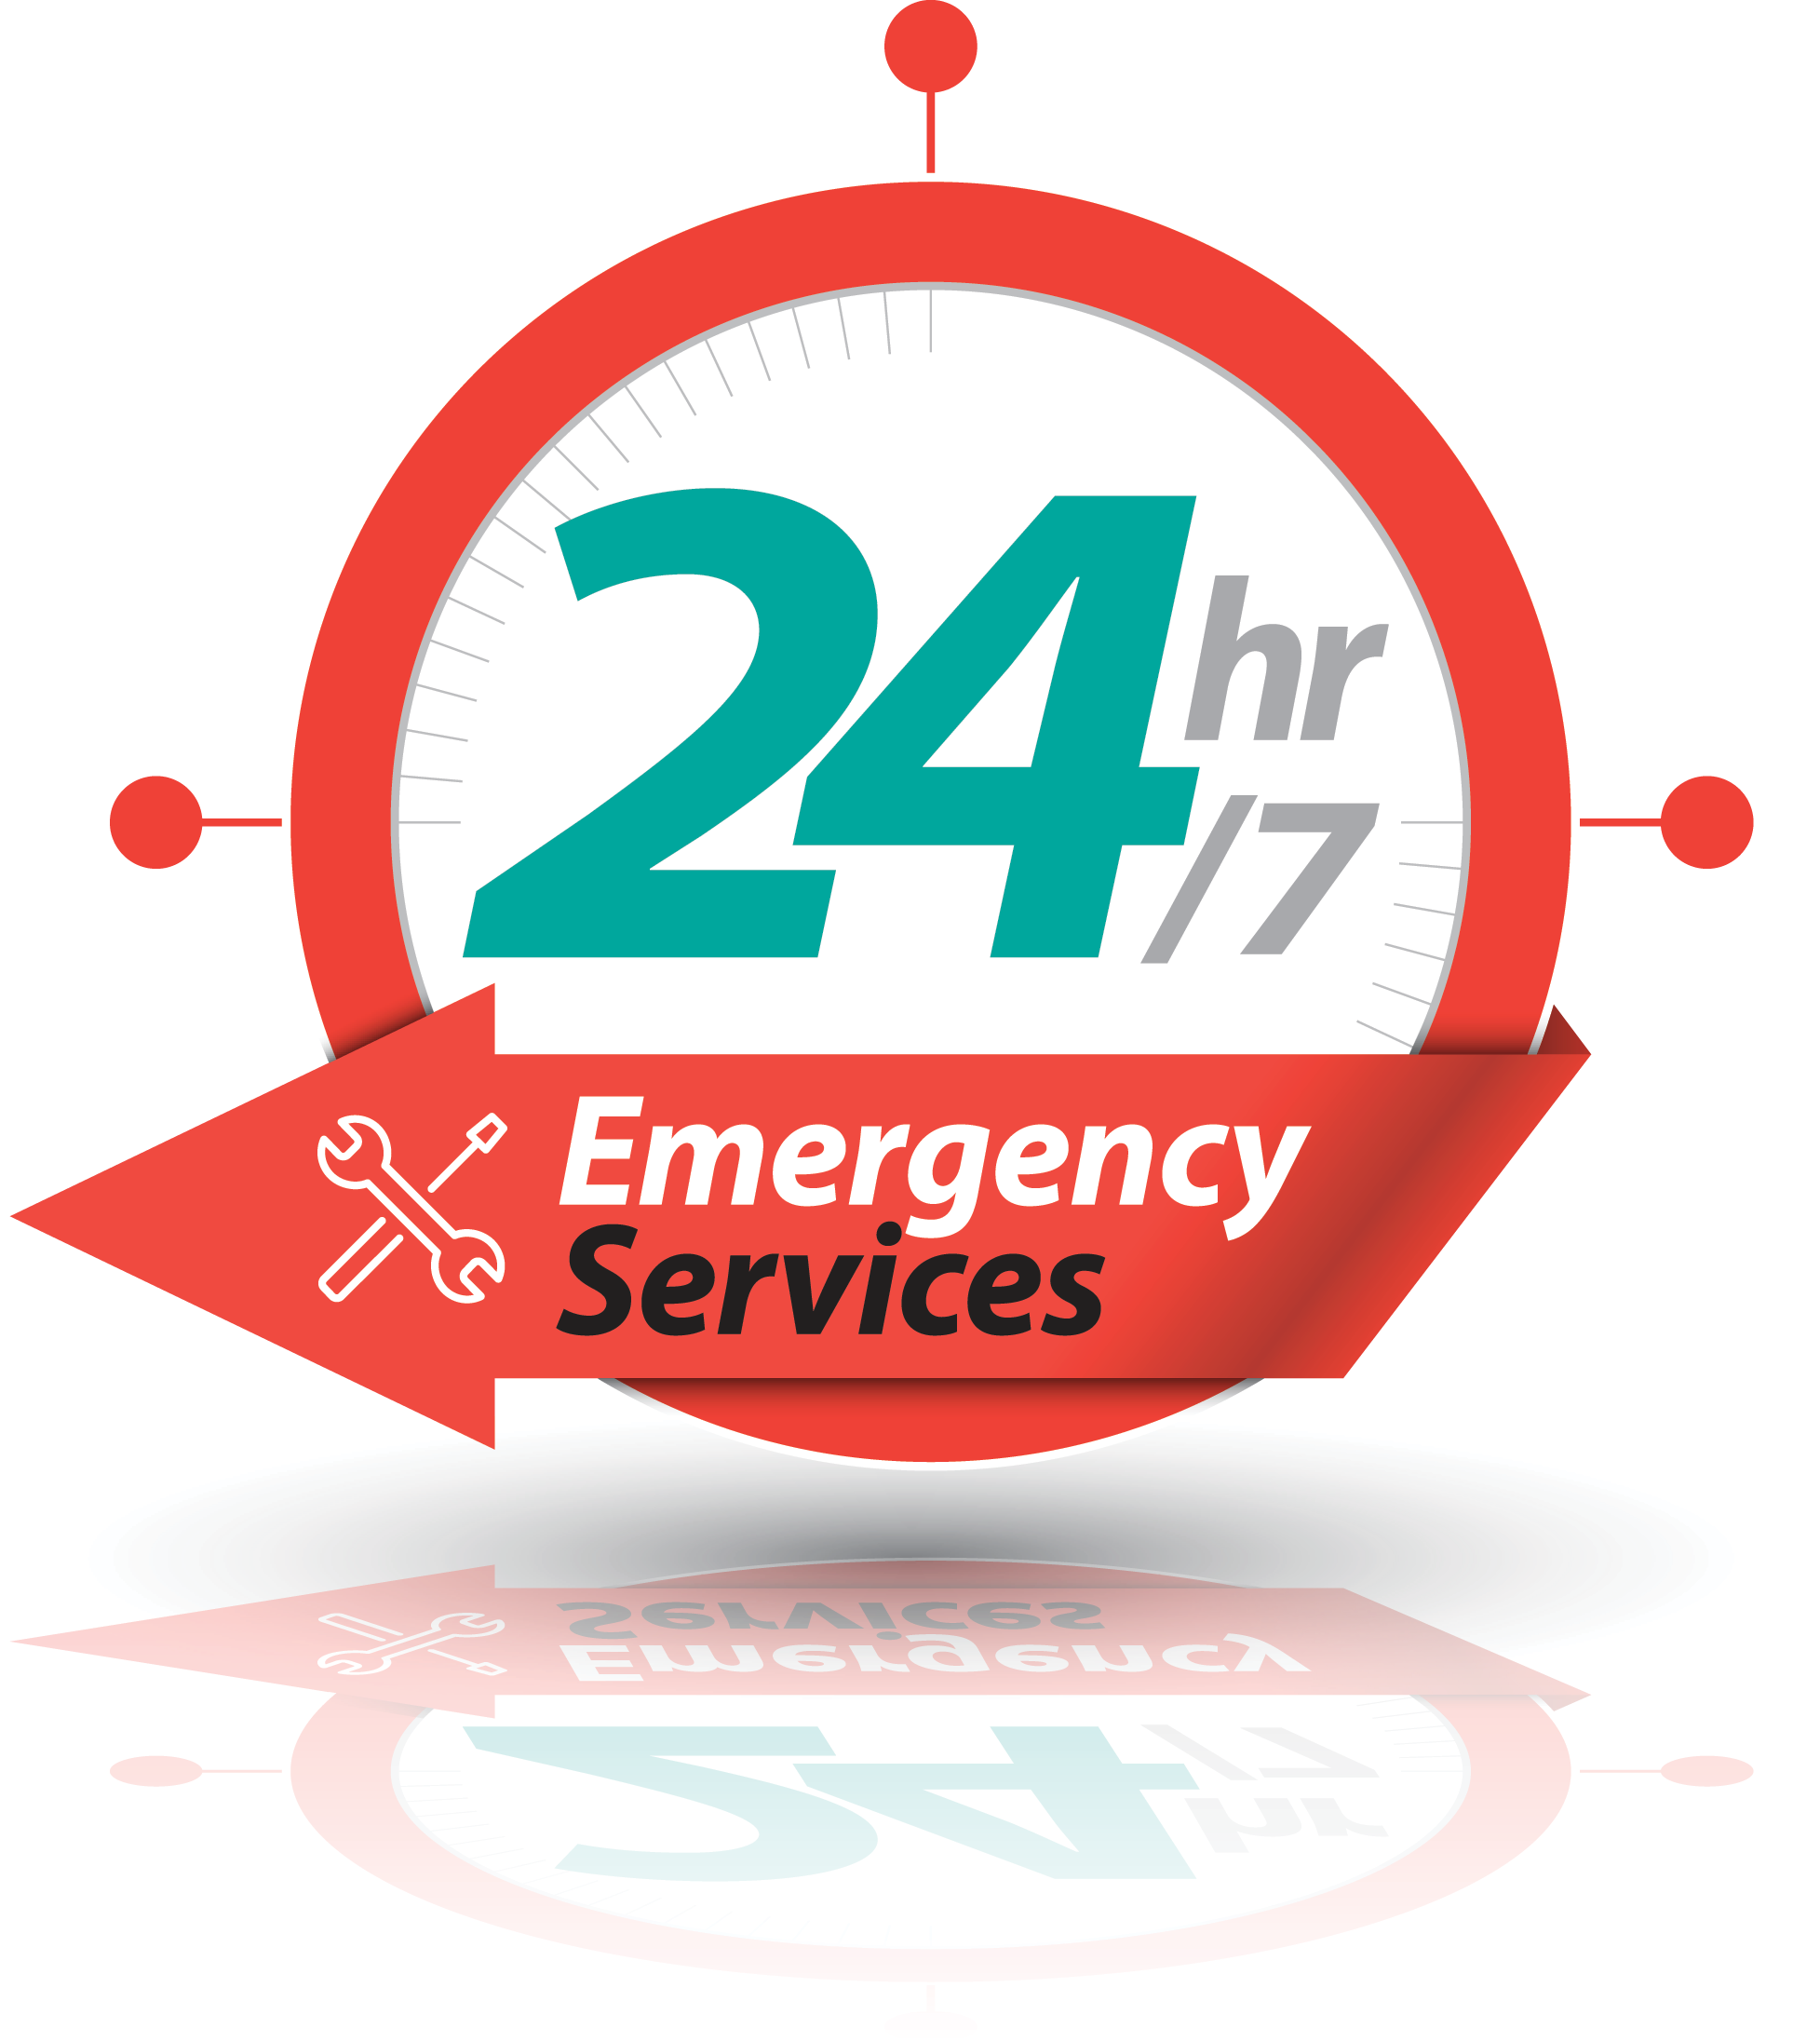 Anywhere-Anytime 24/7 Emergency Services